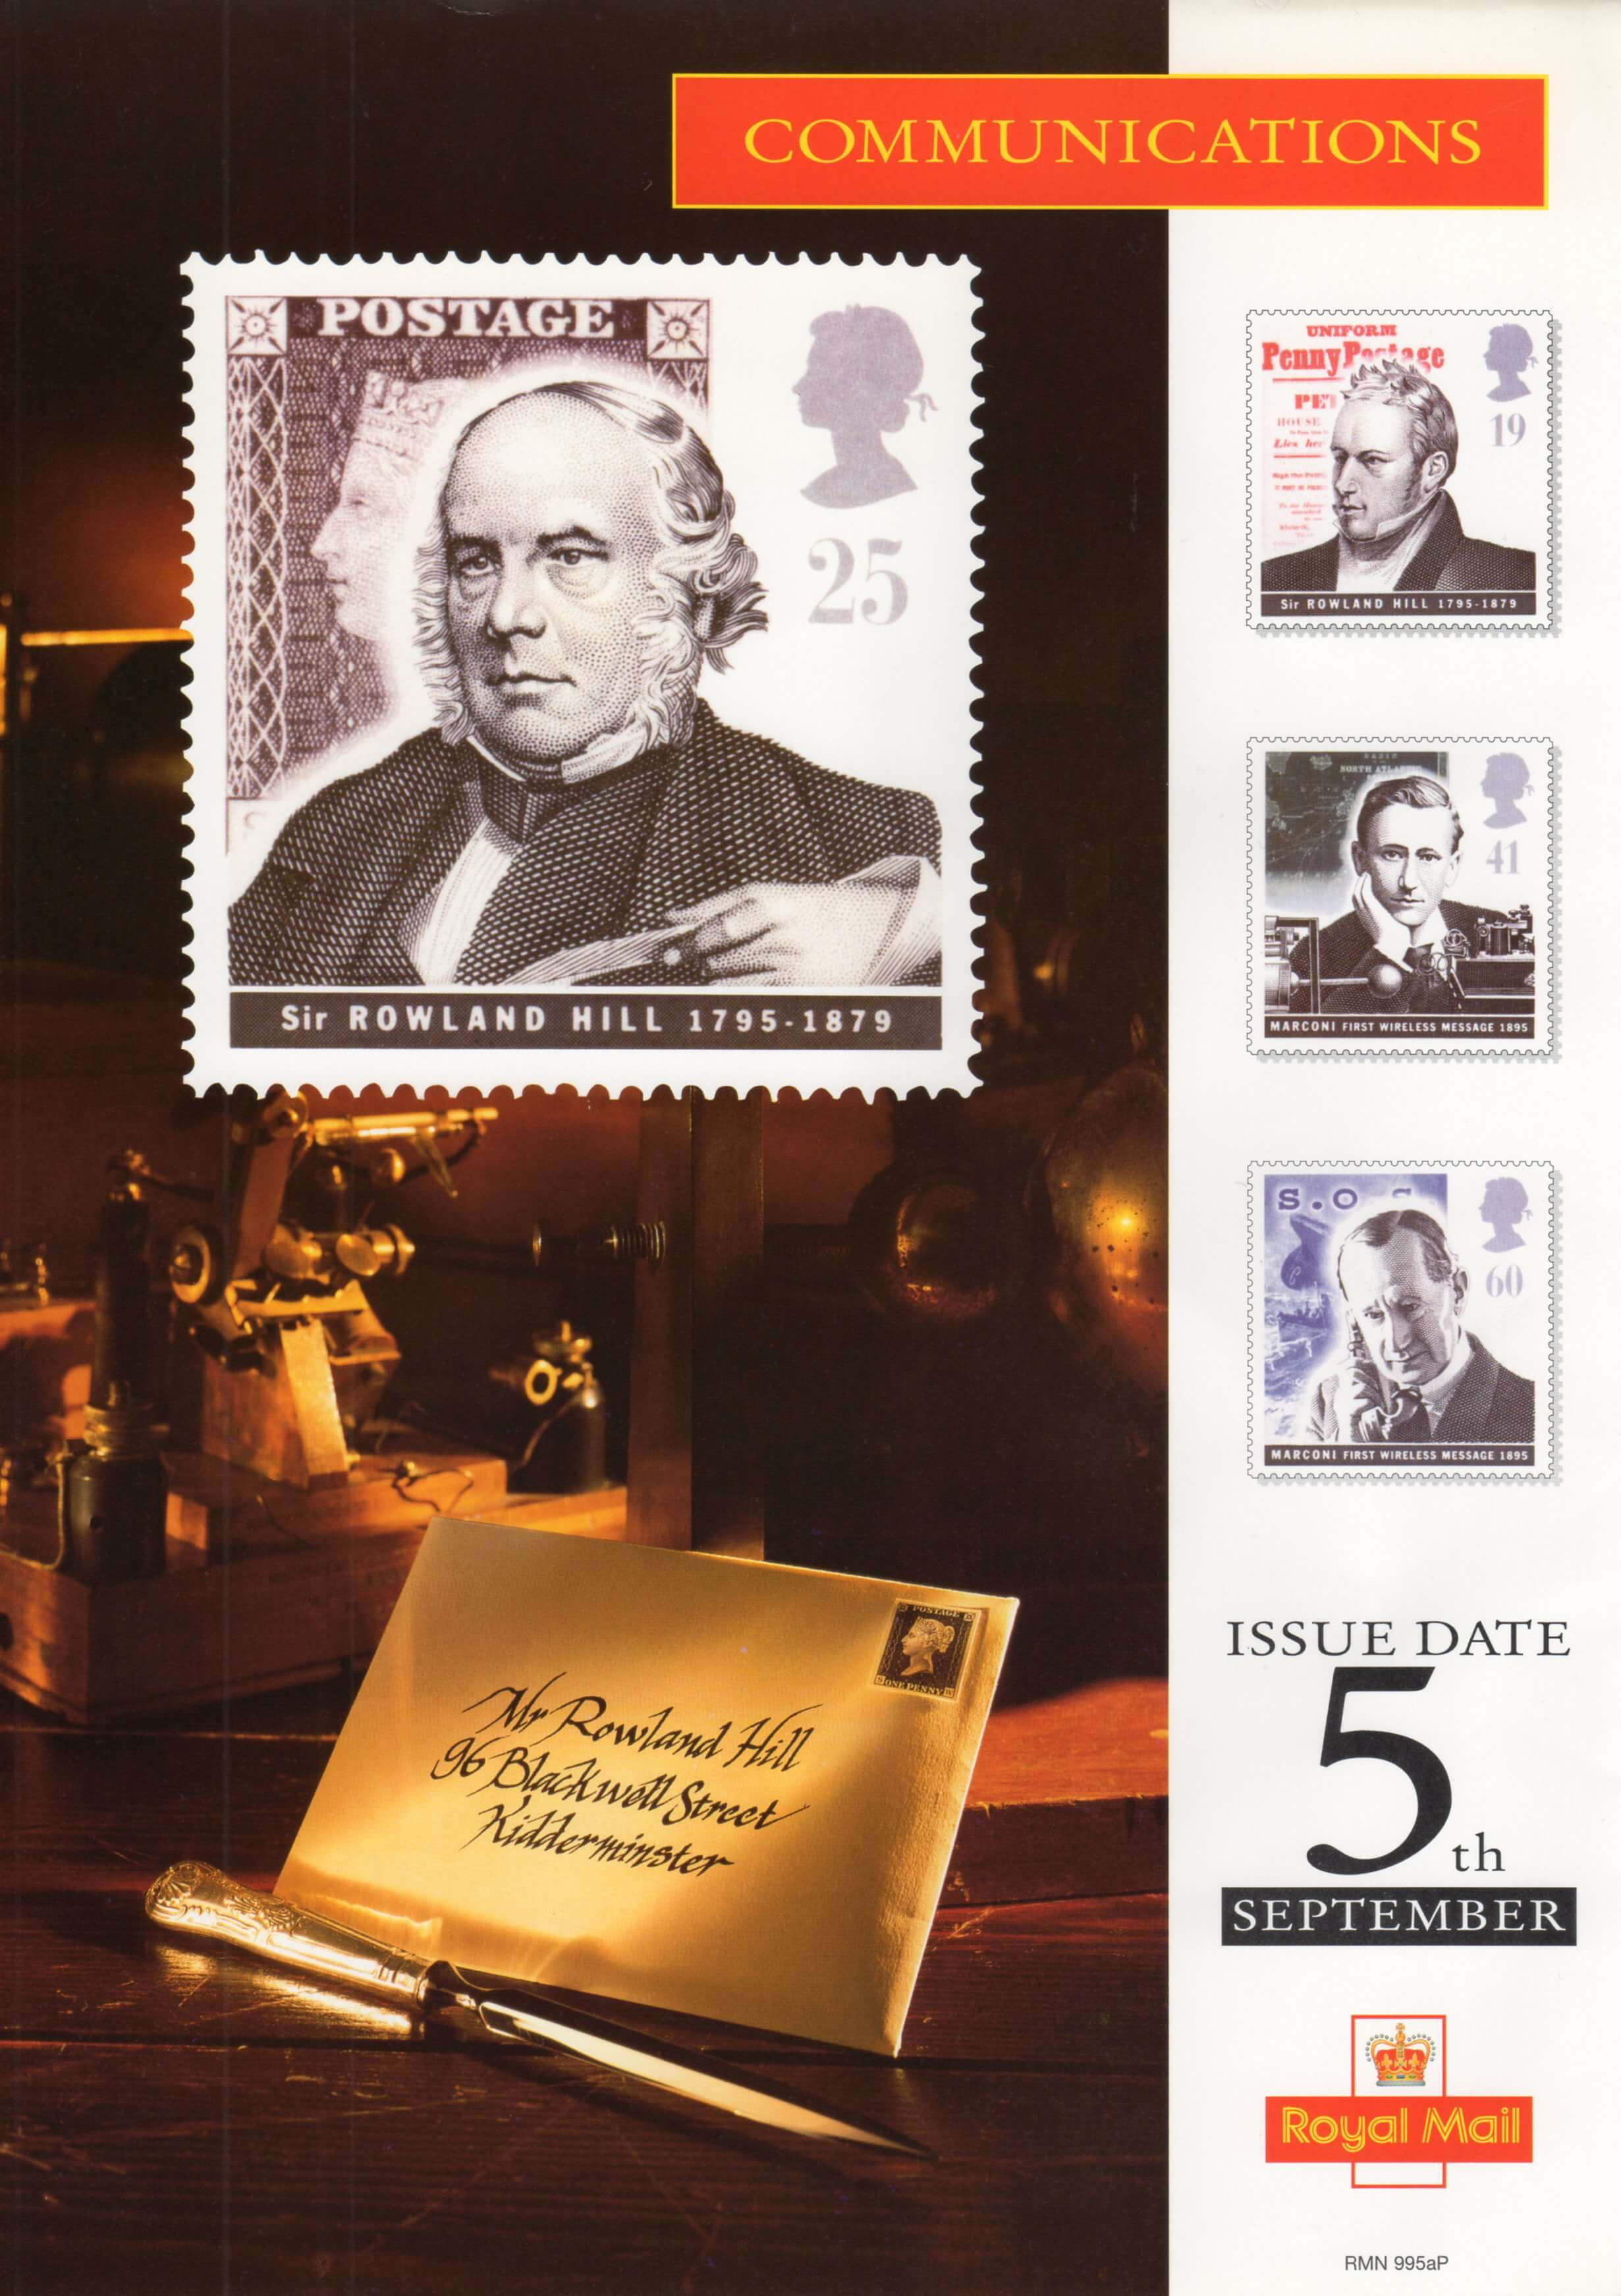 Royal Mail poster advertising the 1995 Communications stamp set, Scott #1625-1628